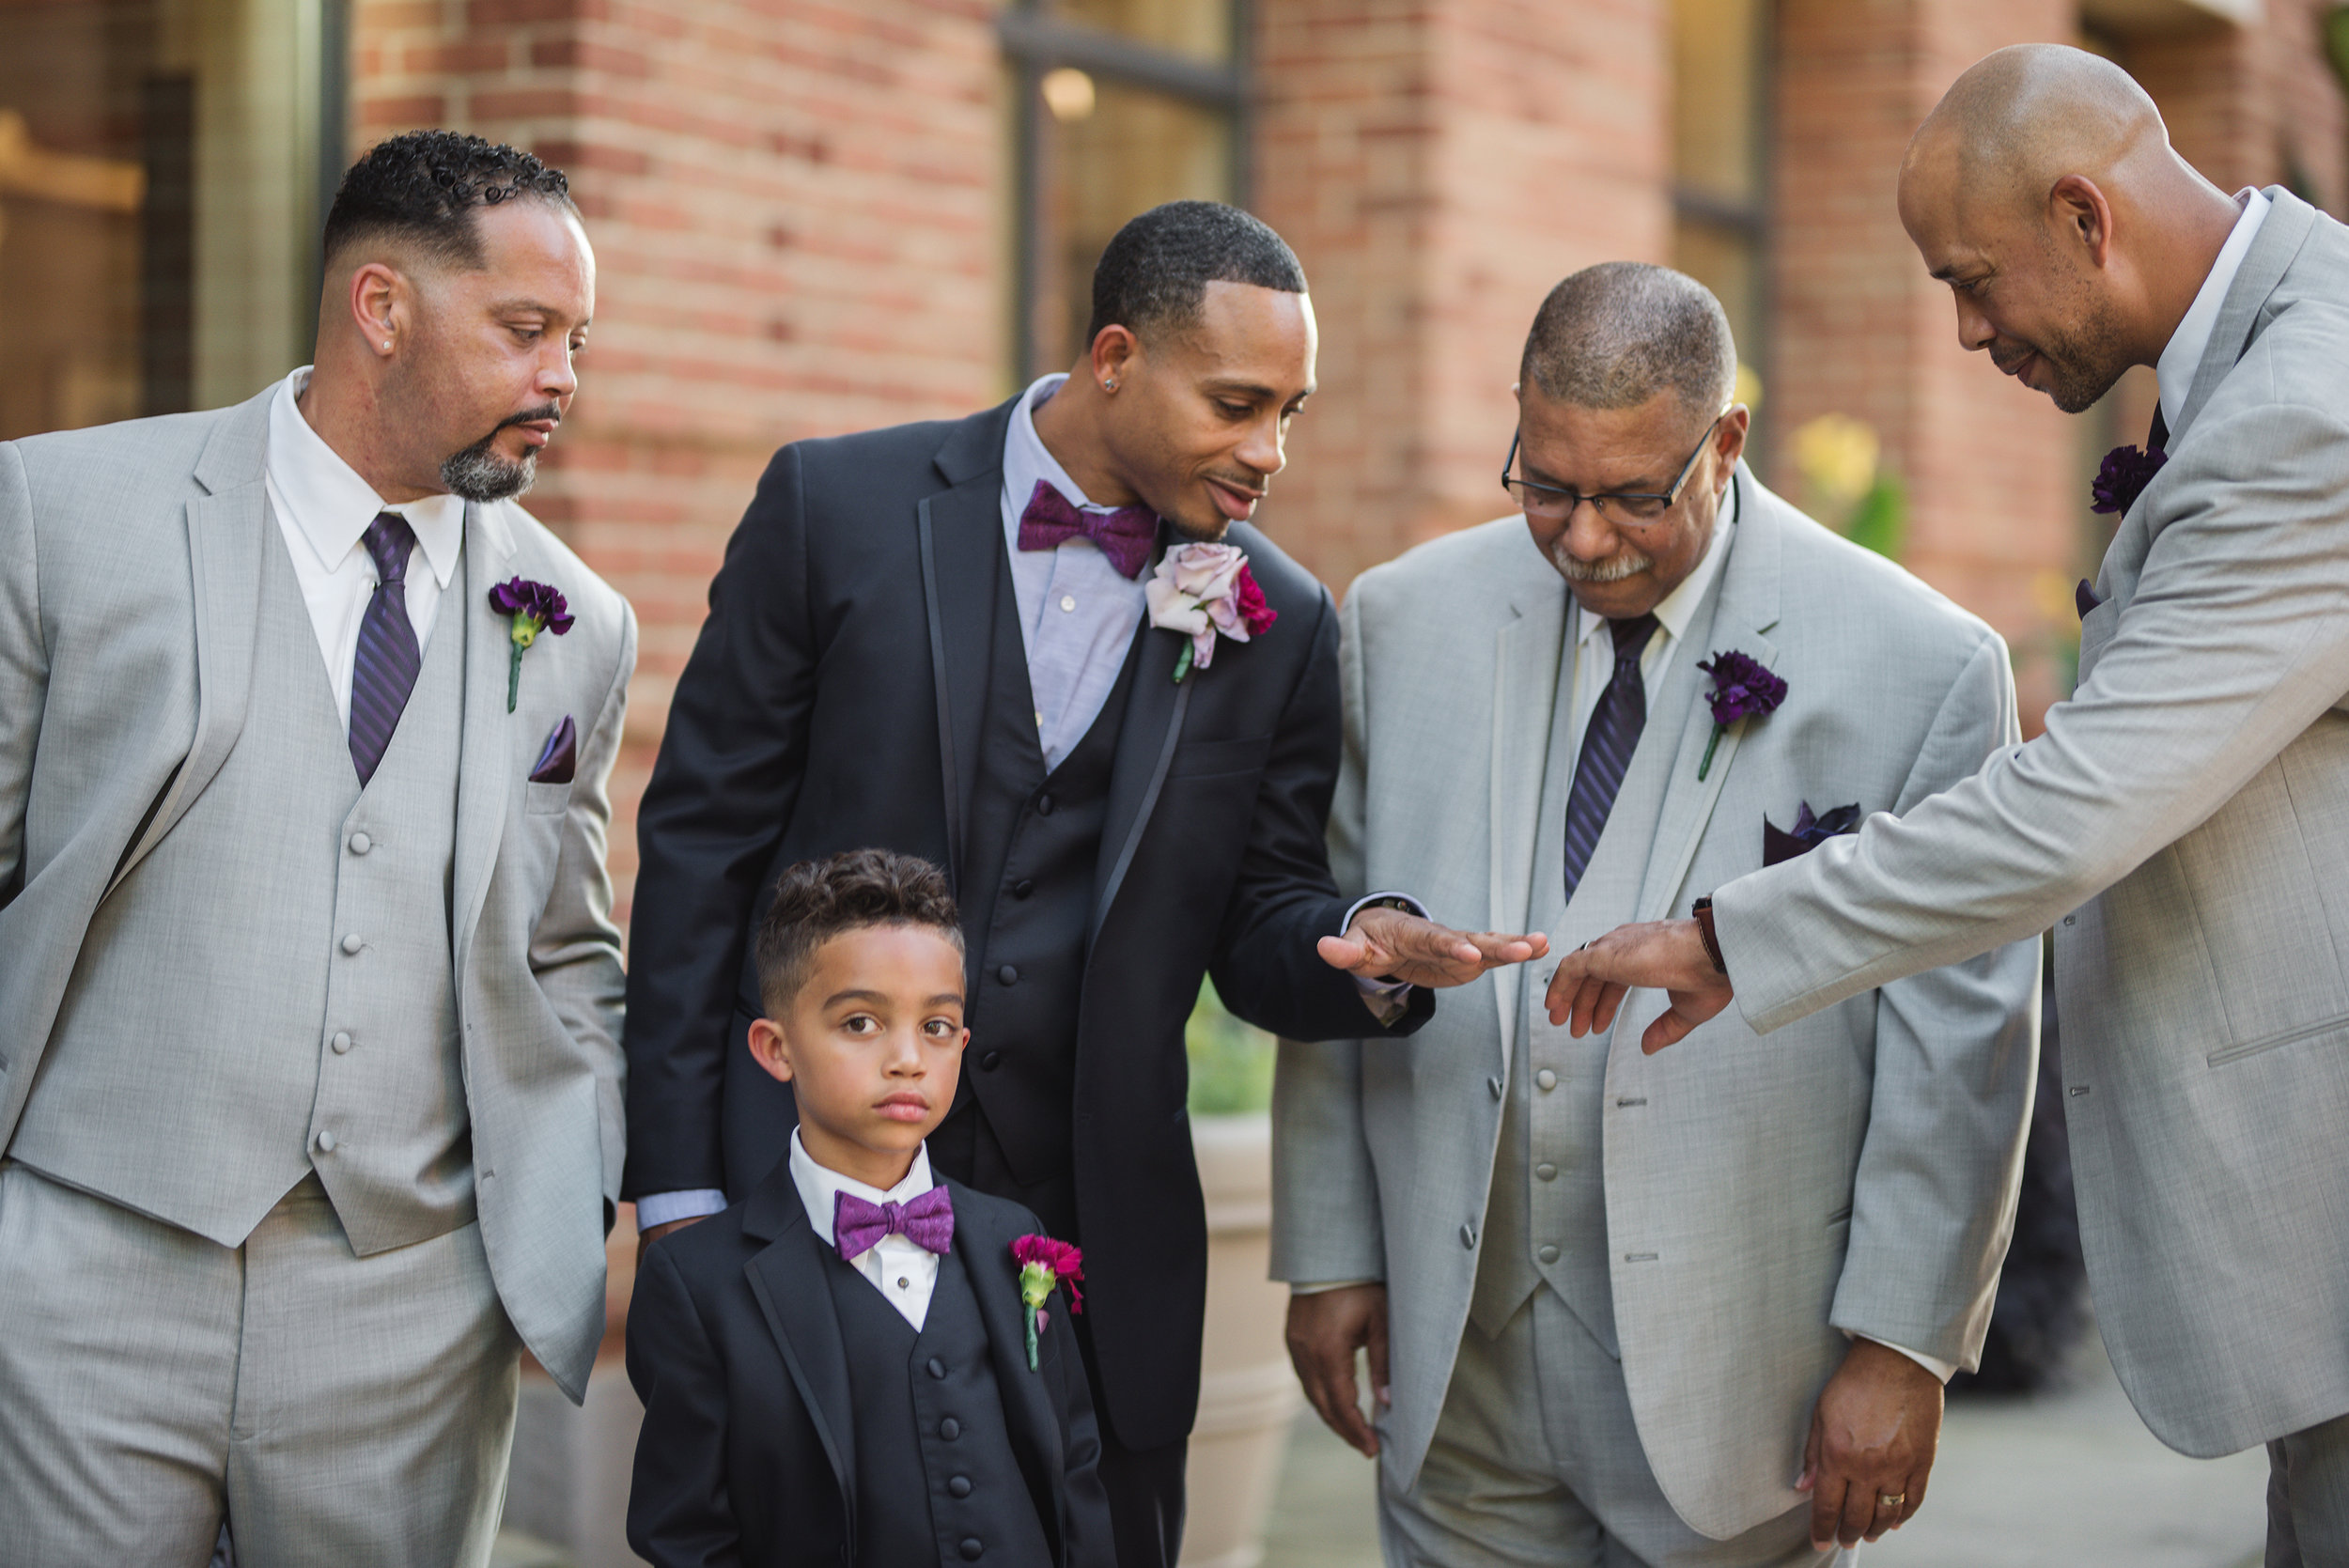 affordable wedding photographers columbus ohio